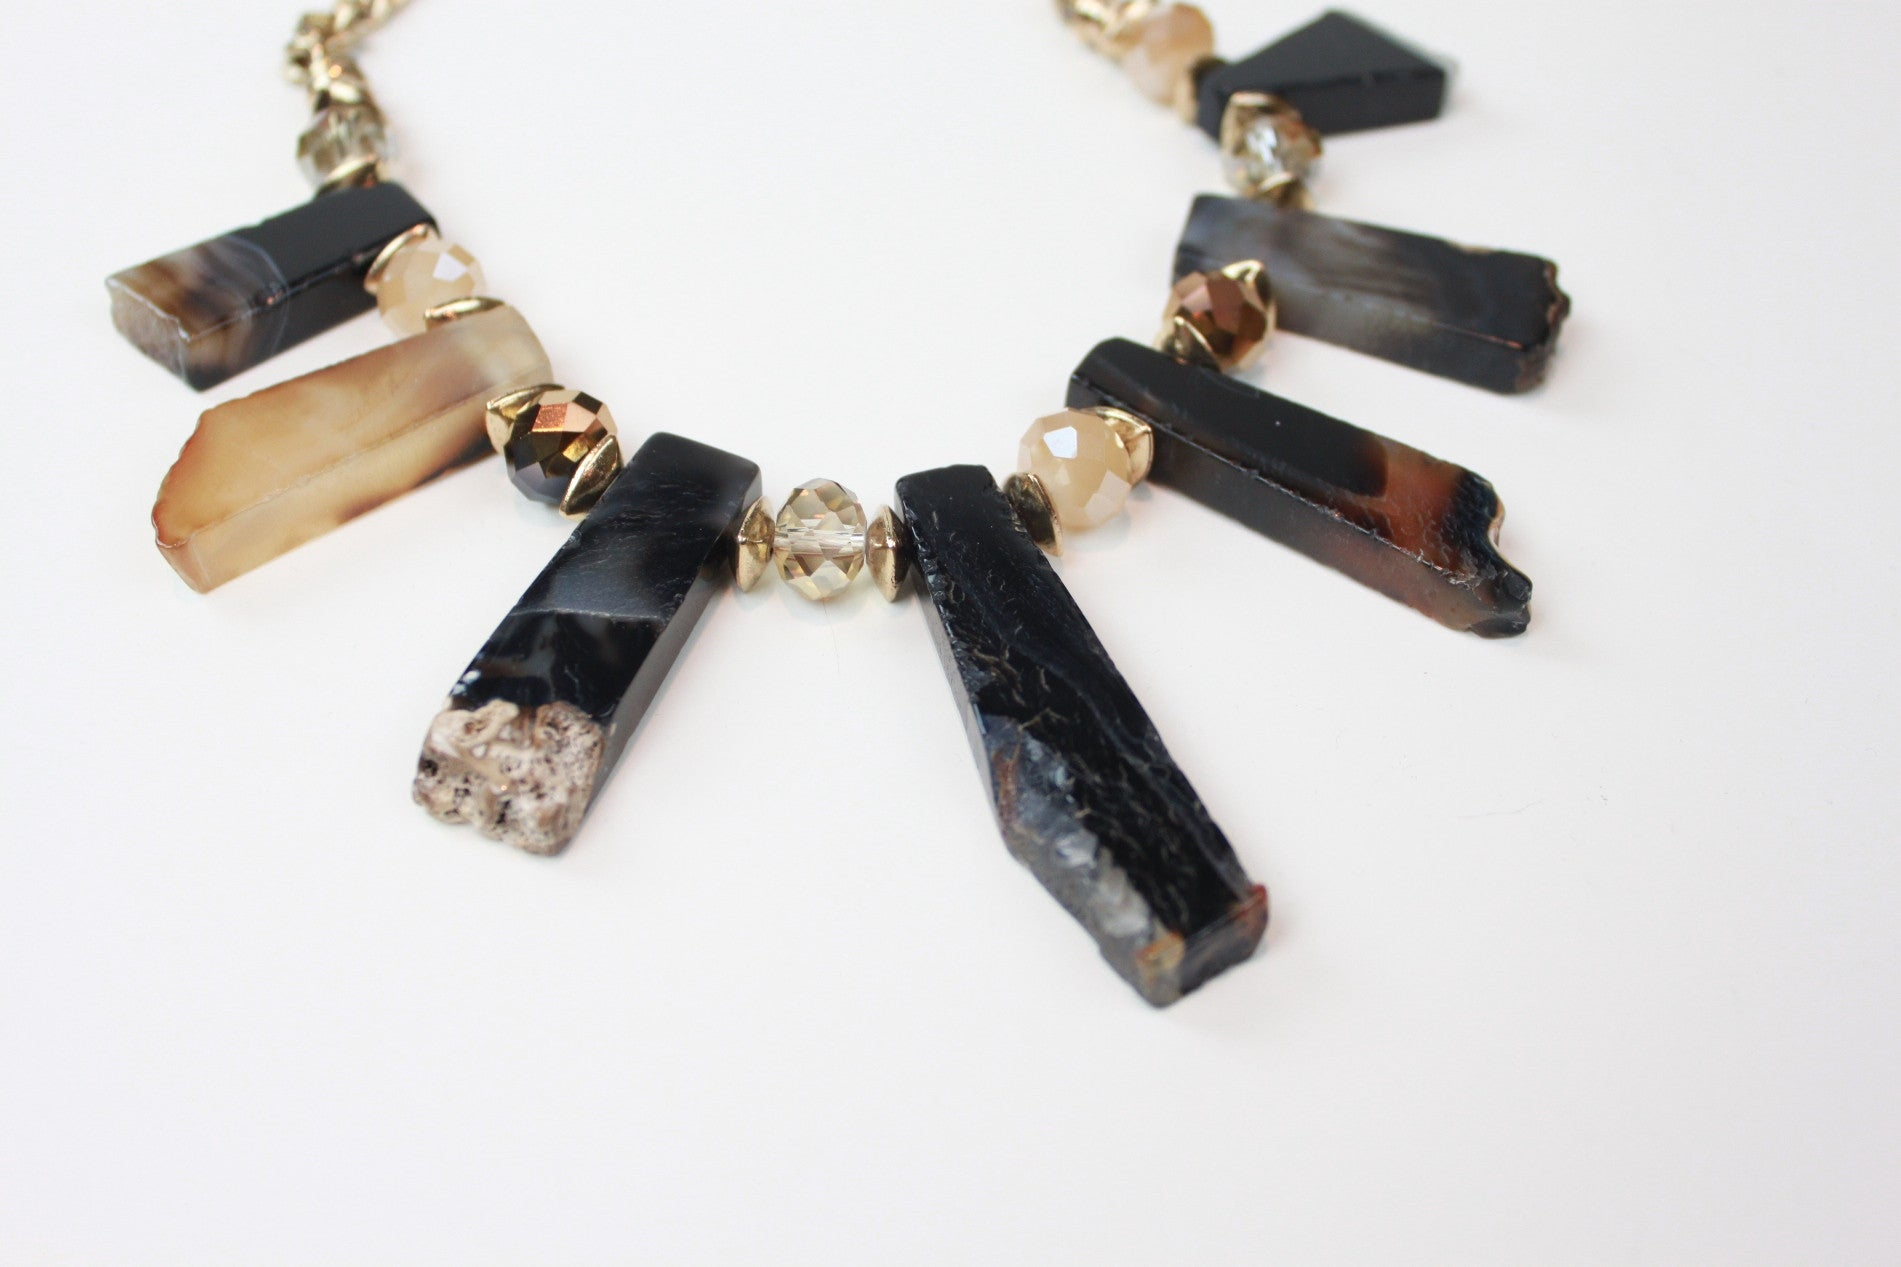 The Geologist Natural Stone Necklace